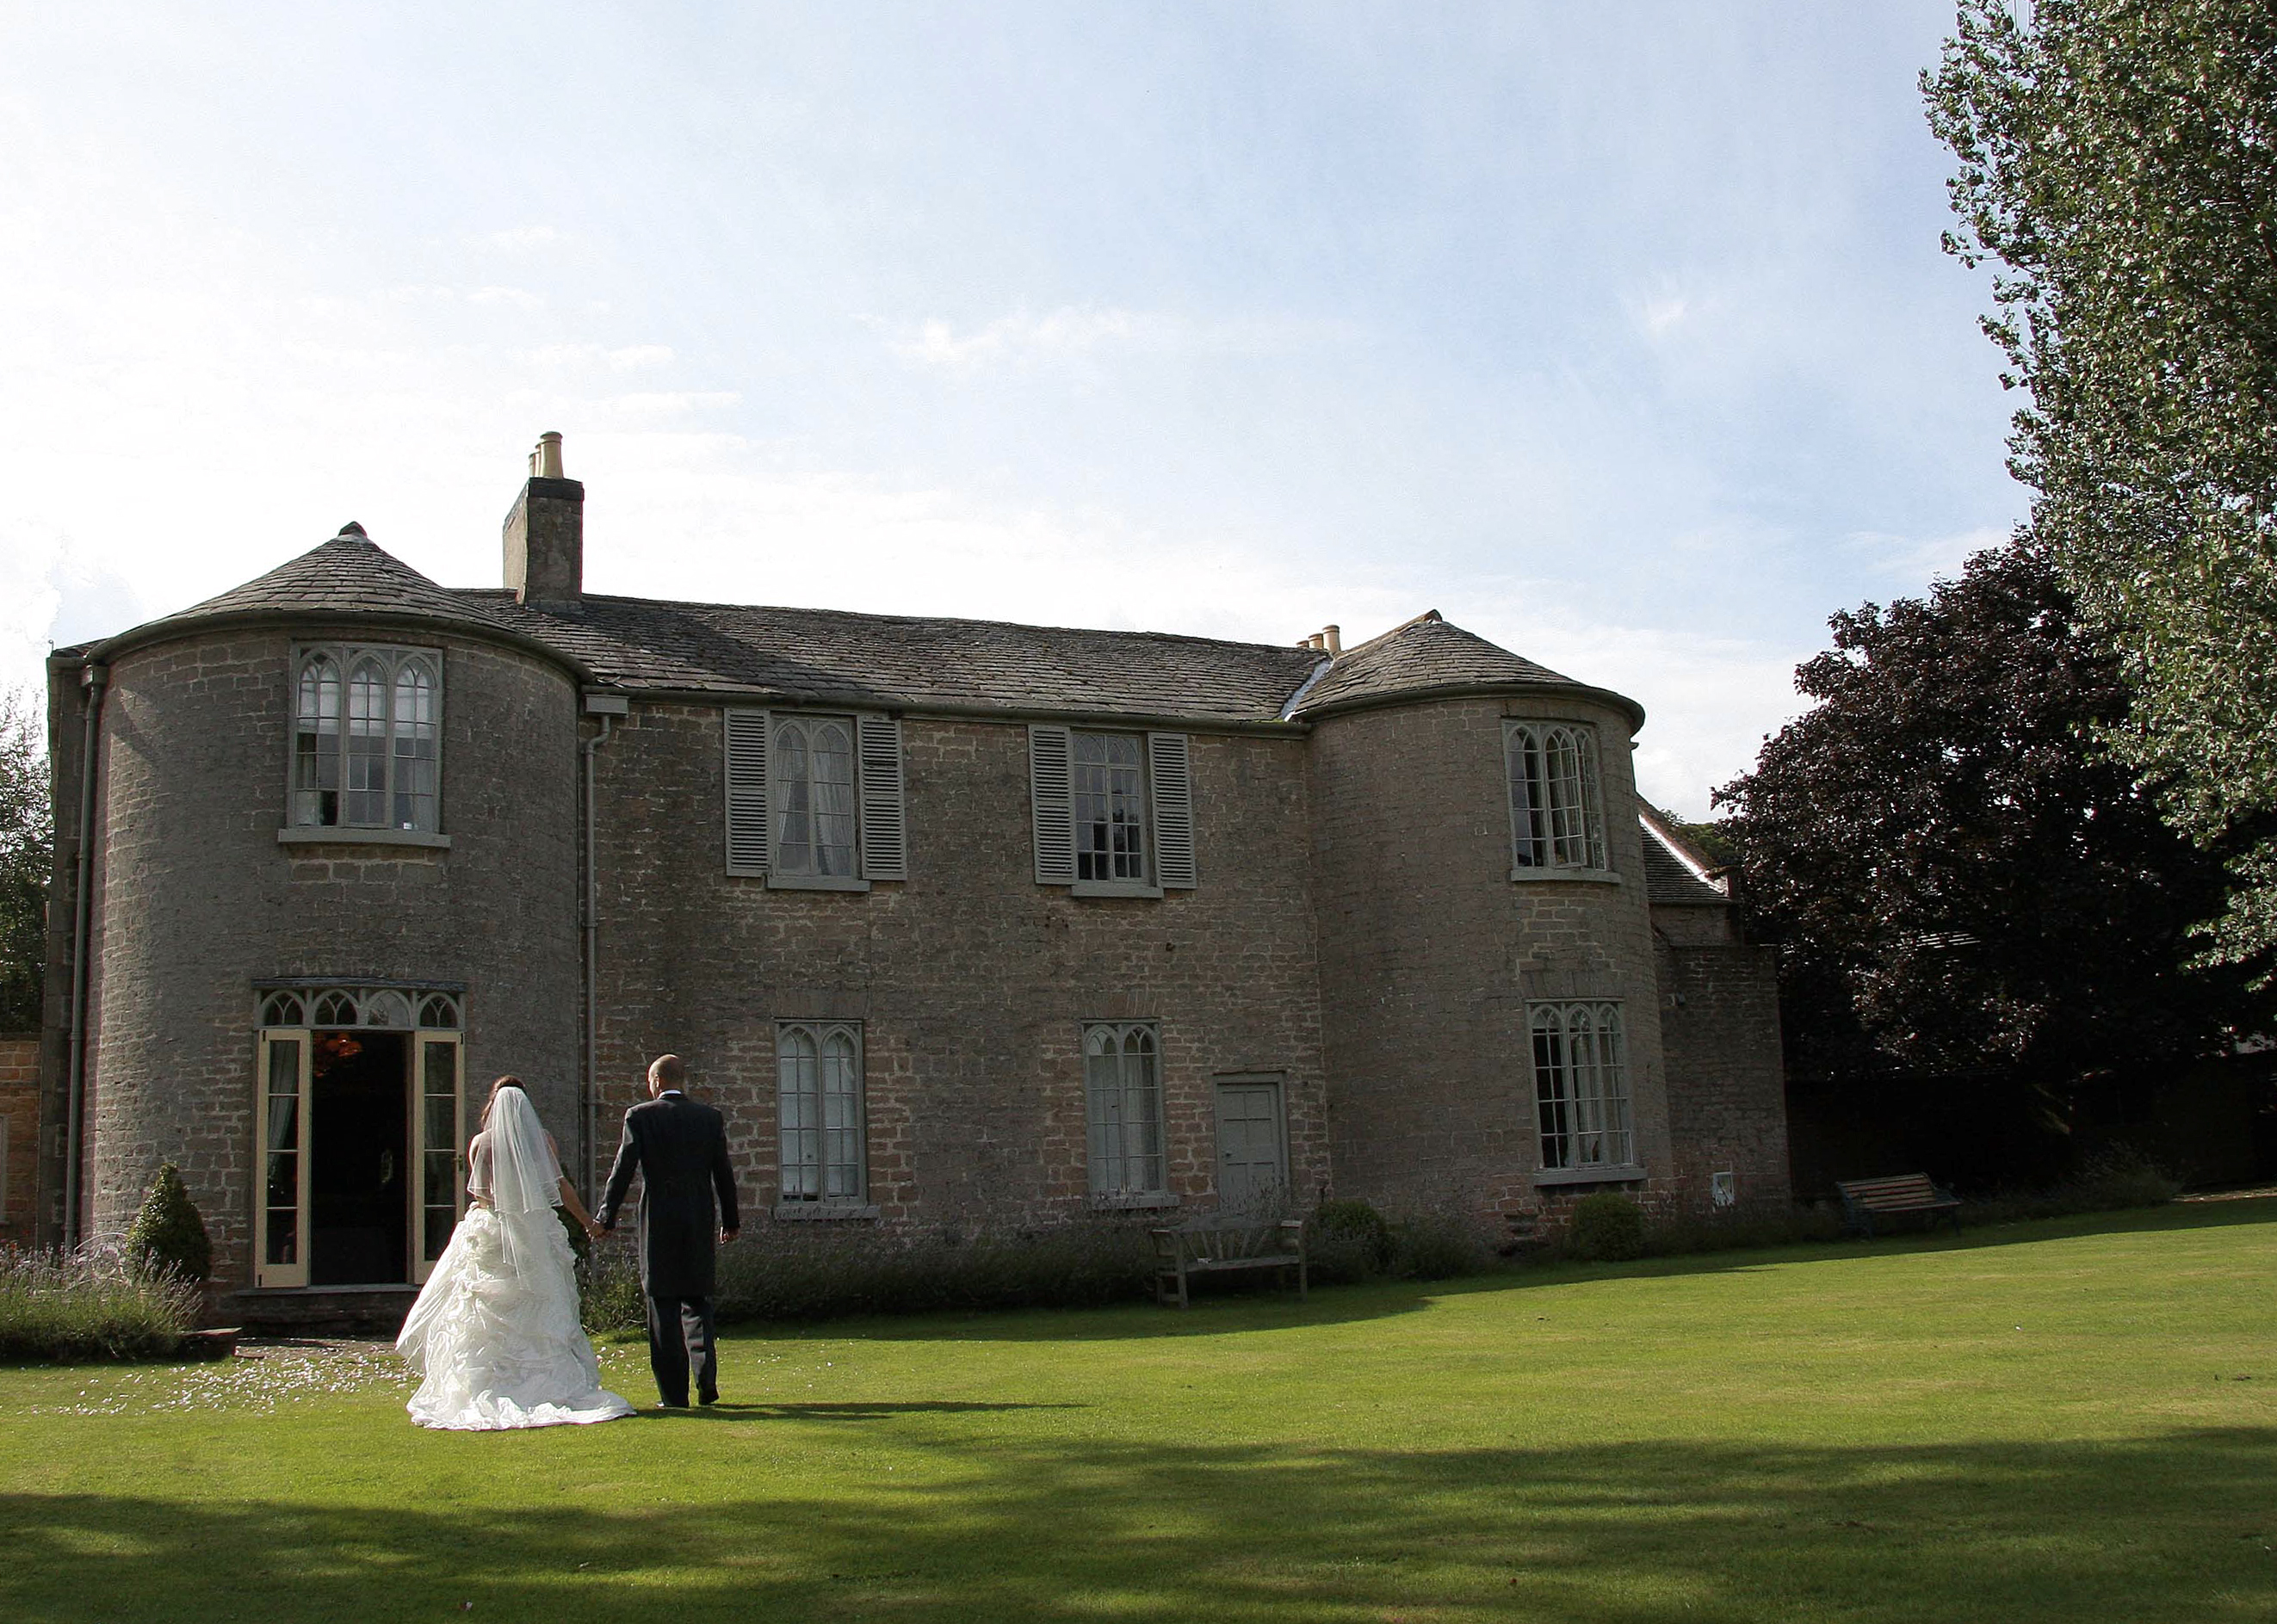 Weddings at Cockliffe Country House Hotel